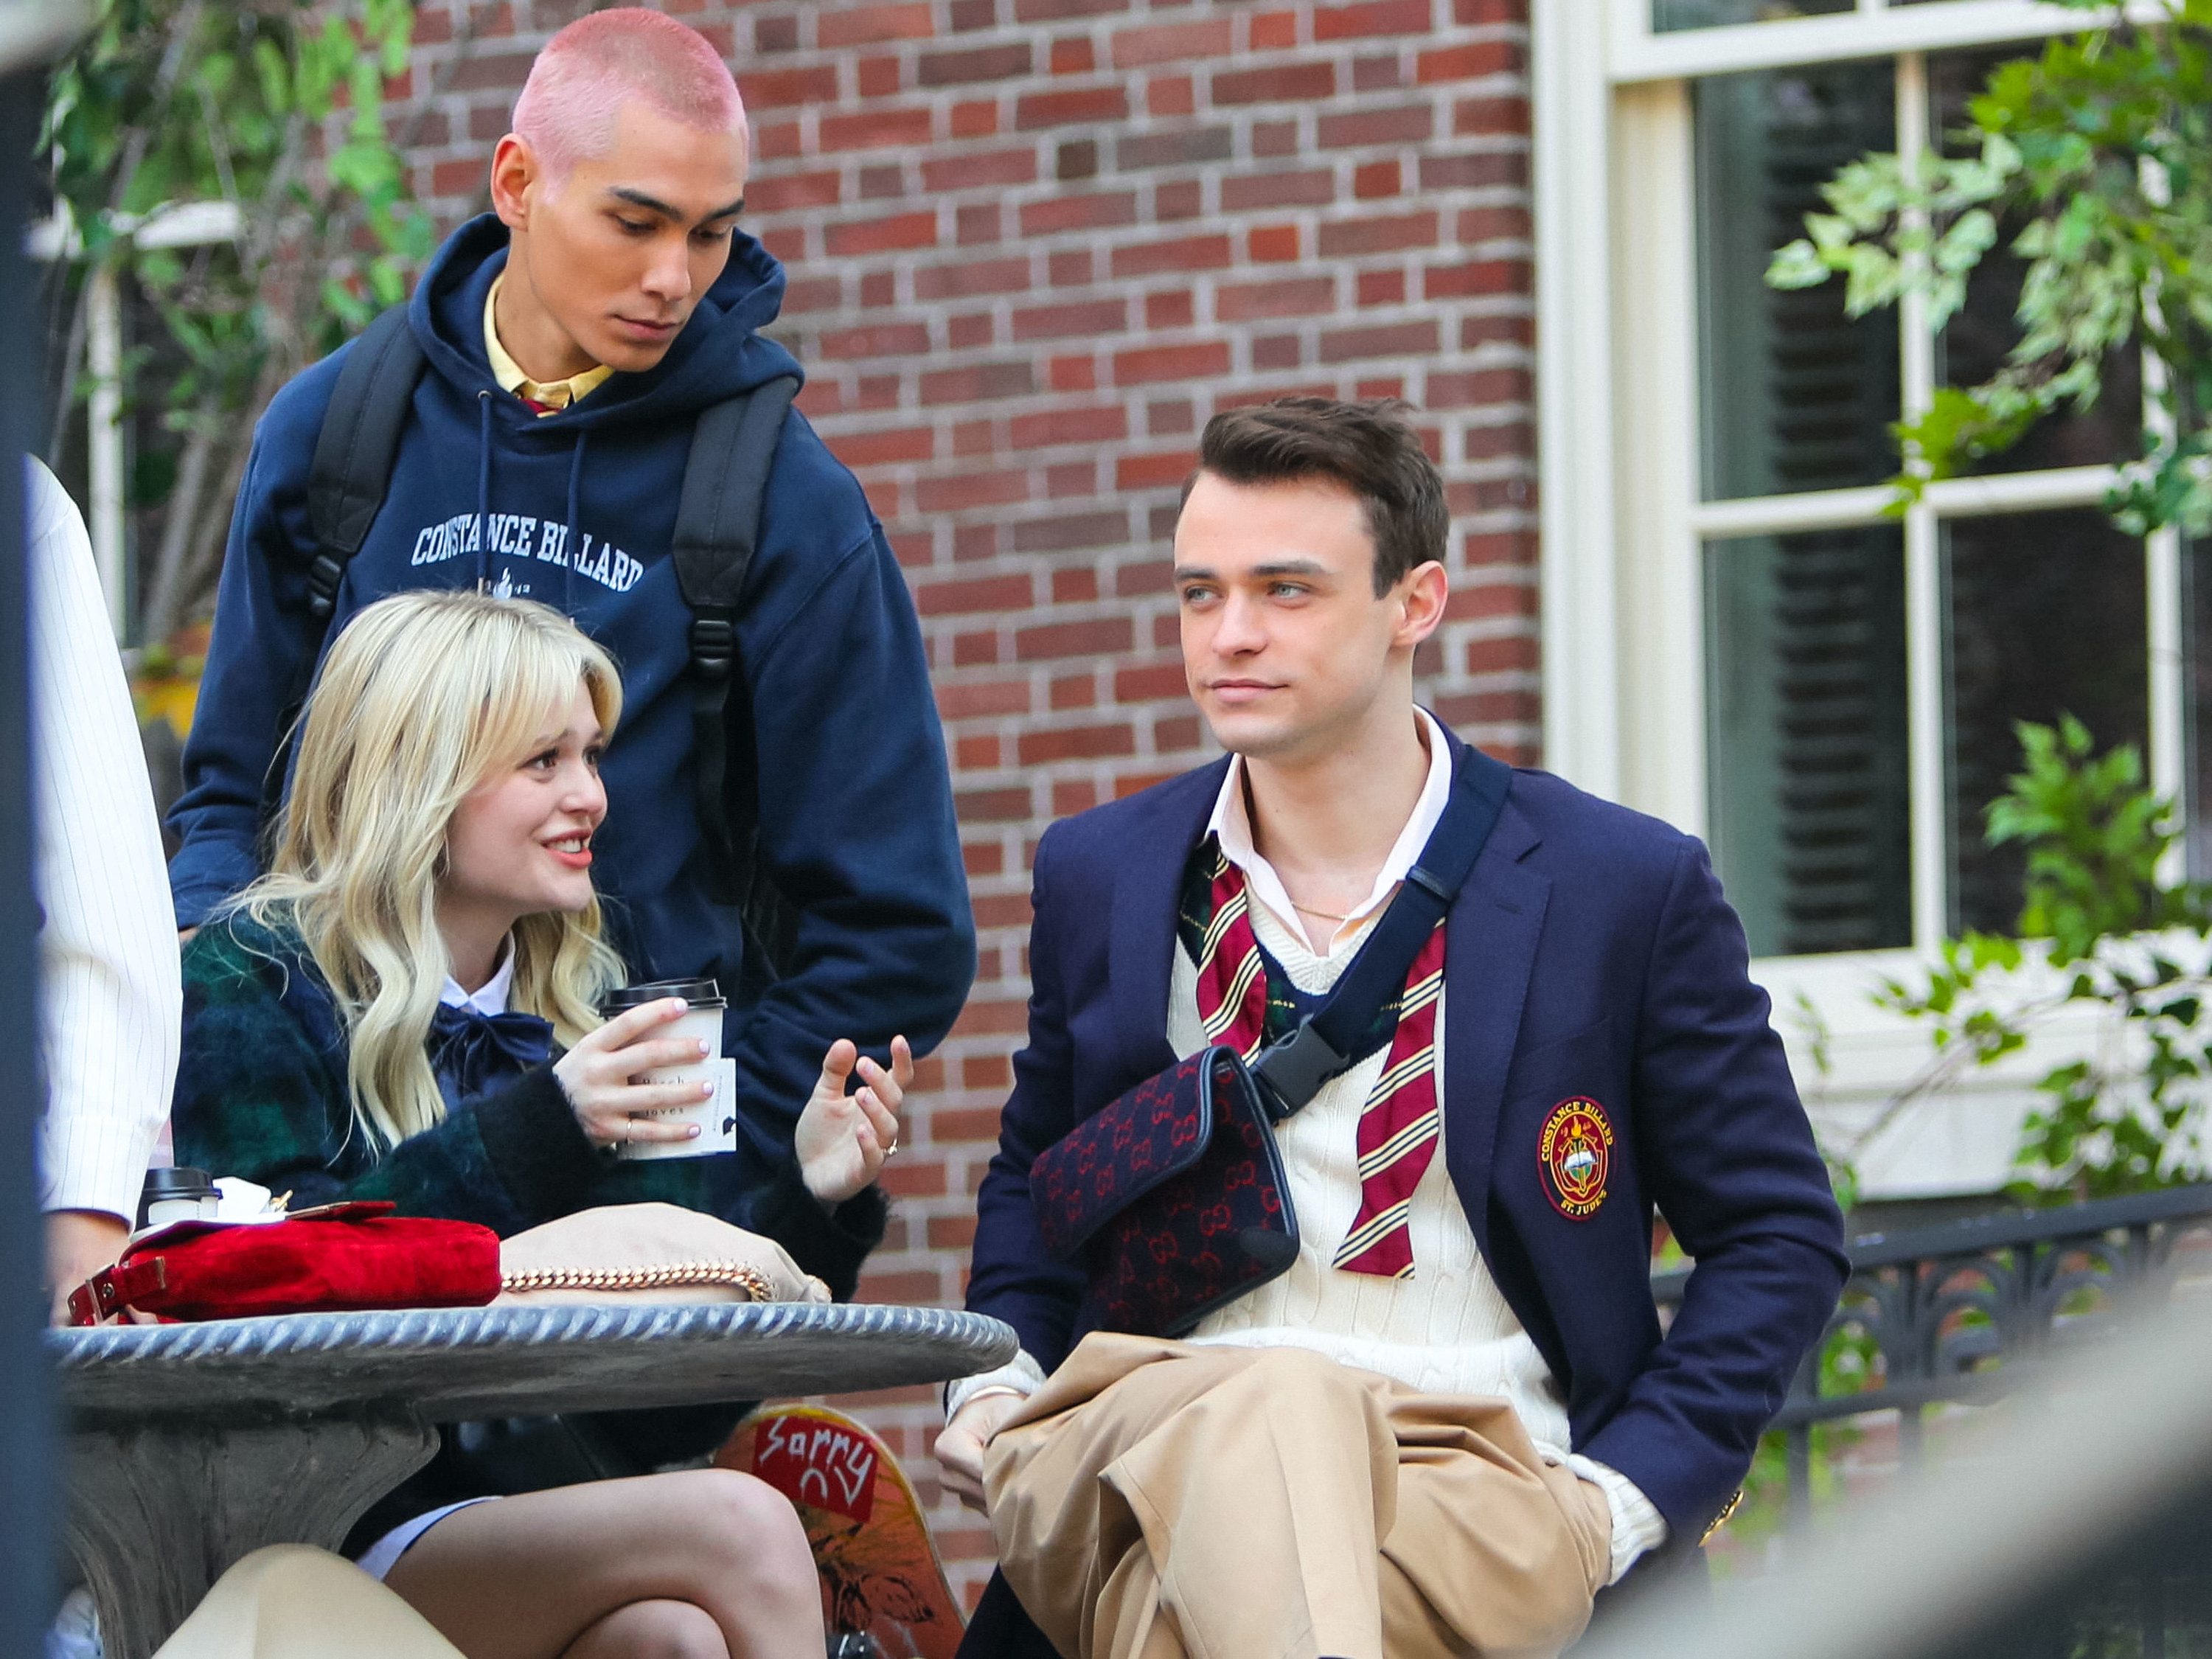 Thomas Doherty, Emily Alyn Lind and Evan Mock are seen at the film set of the 'Gossip Girl' TV Series on March 11, 2021 in New York City